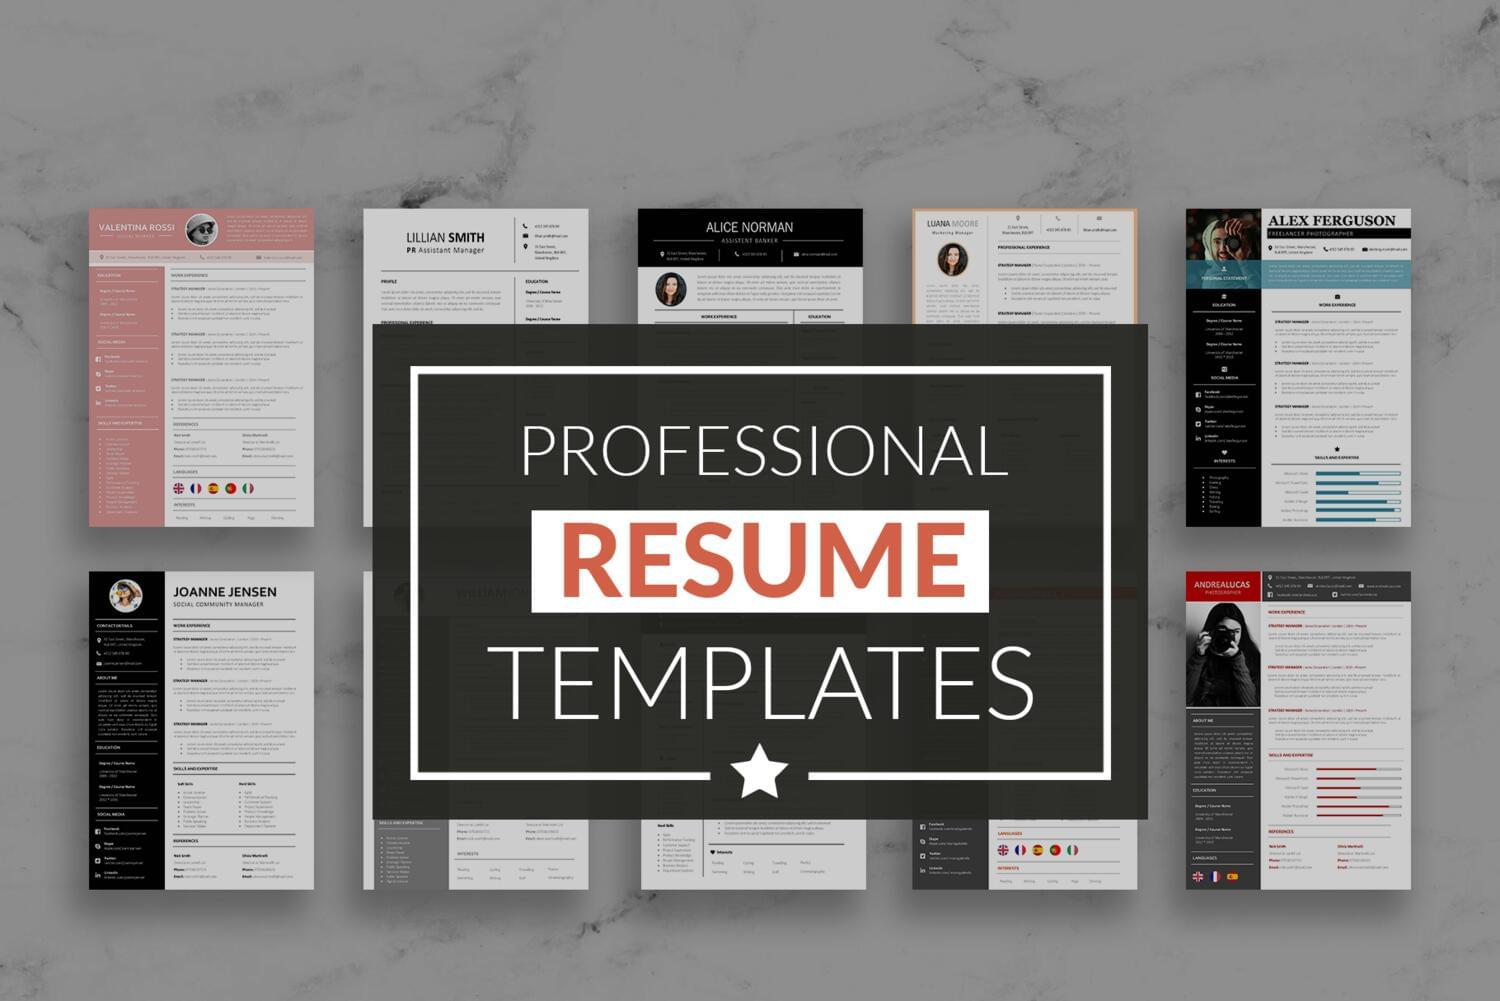 Professional Resume Templates with Cover Letter by carlos_fernando - 117562